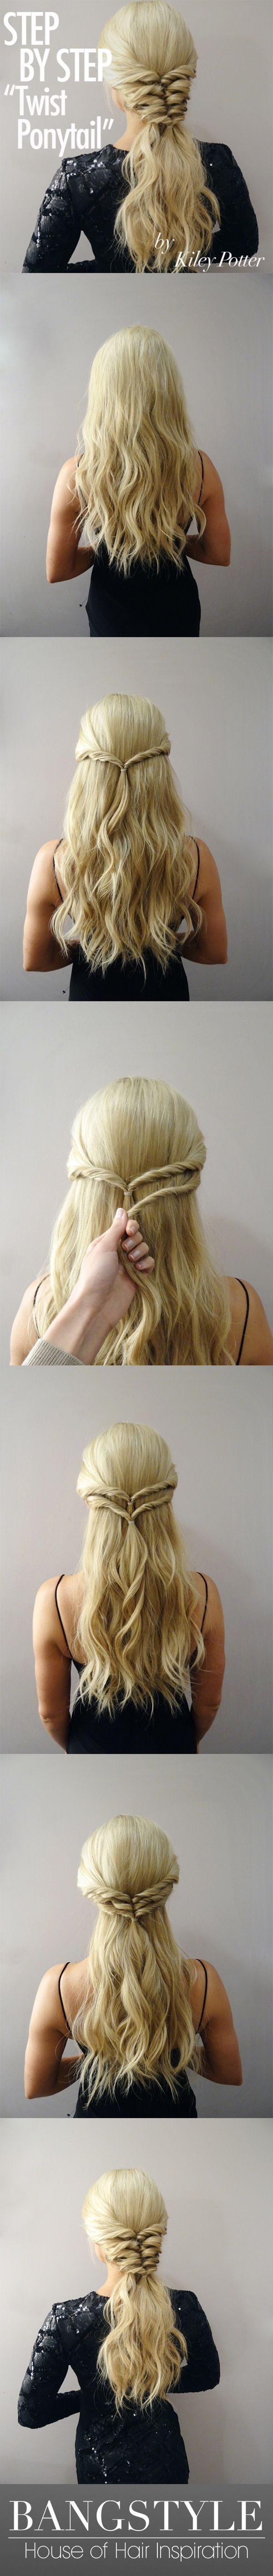 Get the look twist ponytail tutorial by kiley potter hair style